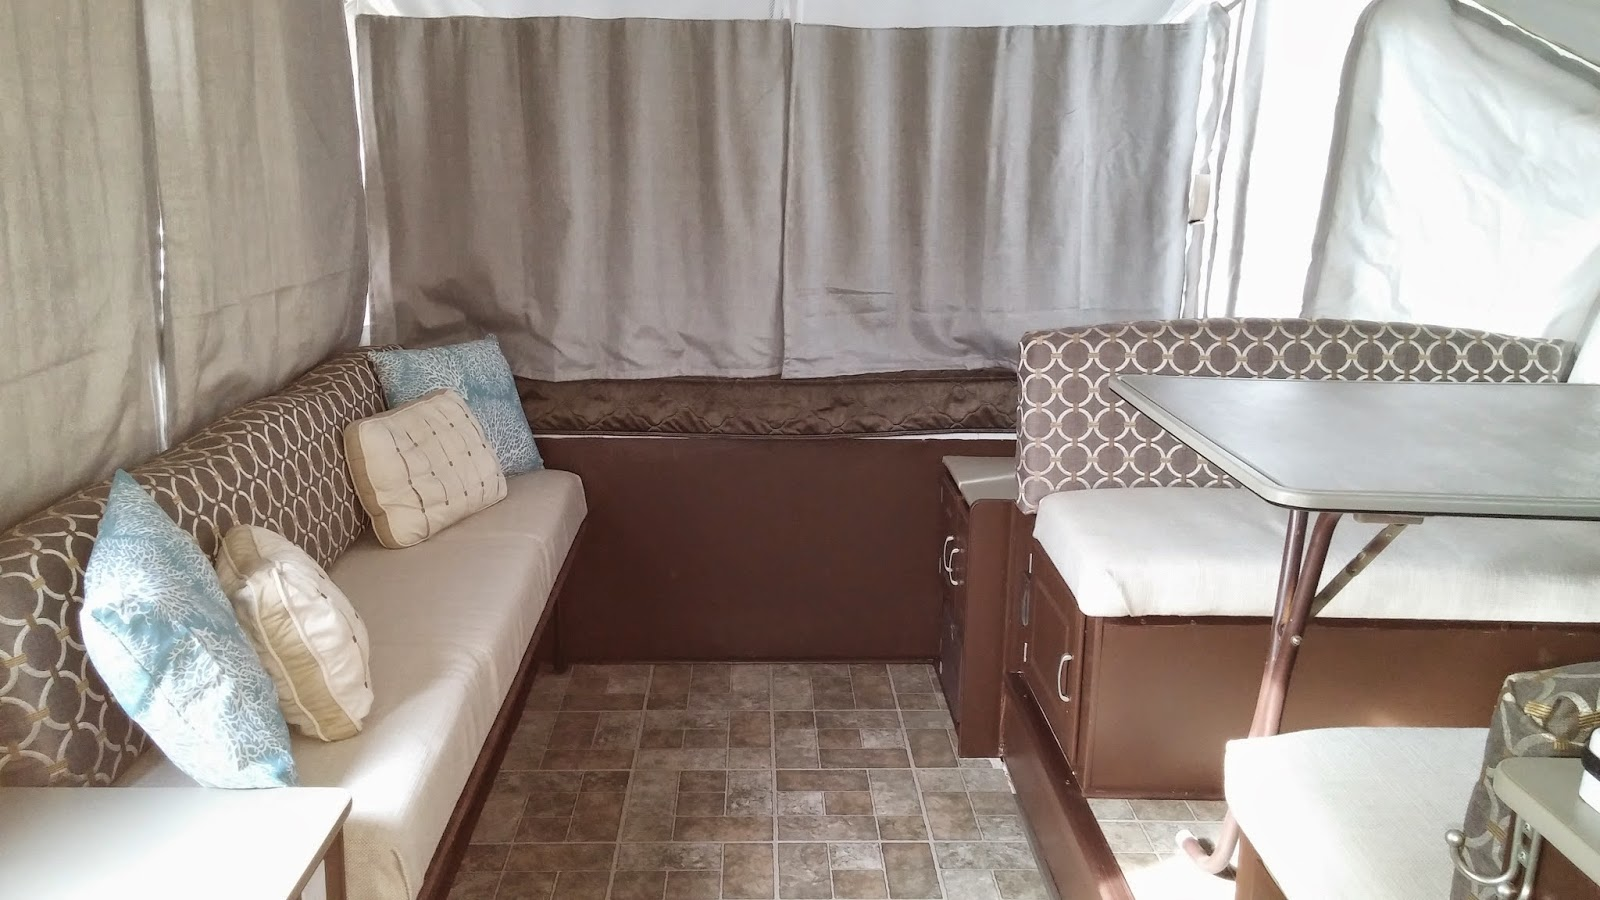 This is our one week pop-up camper remodel!